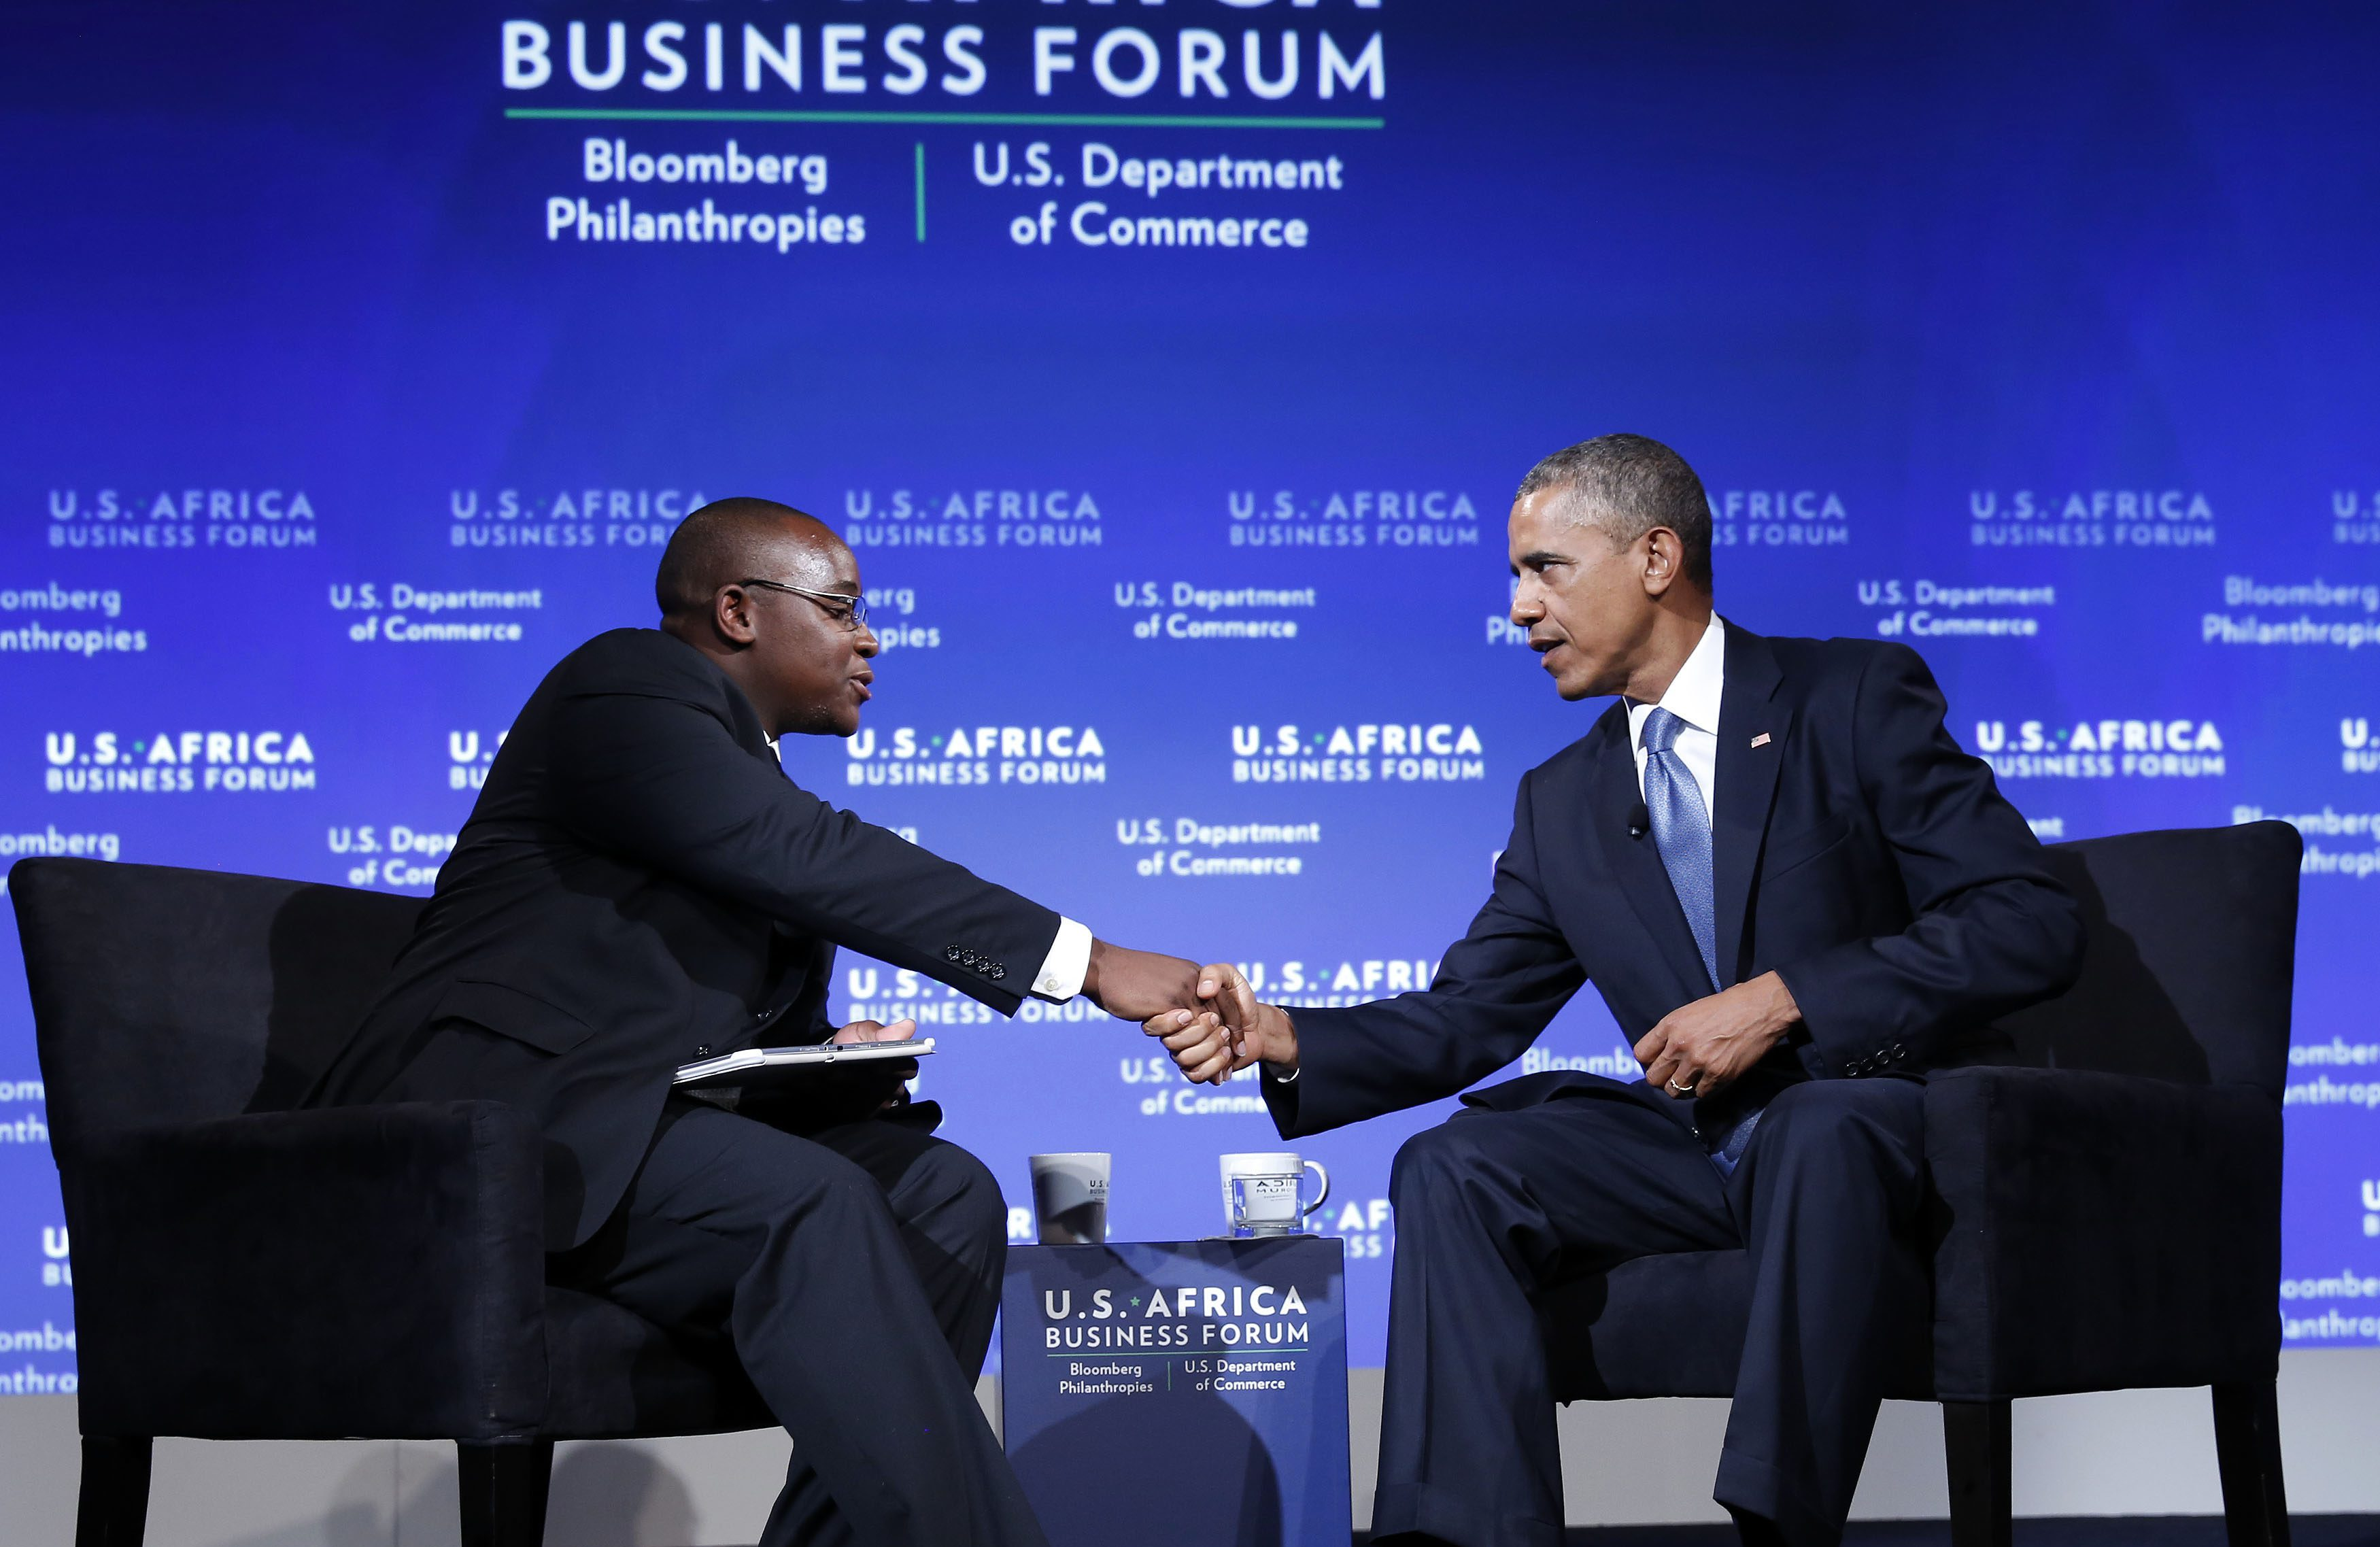 U.S. President Barack Obama shakes hands with Takunda Ralph Michael Chingonzo of Zimbabwe (L) at the U.S.-Africa Business Forum about strengthening trade and financial ties between the U.S. and Africa in Washington, August 5, 2014.     REUTERS/Larry Downing   (UNITED STATES - Tags: POLITICS BUSINESS) - RTR41CZ7